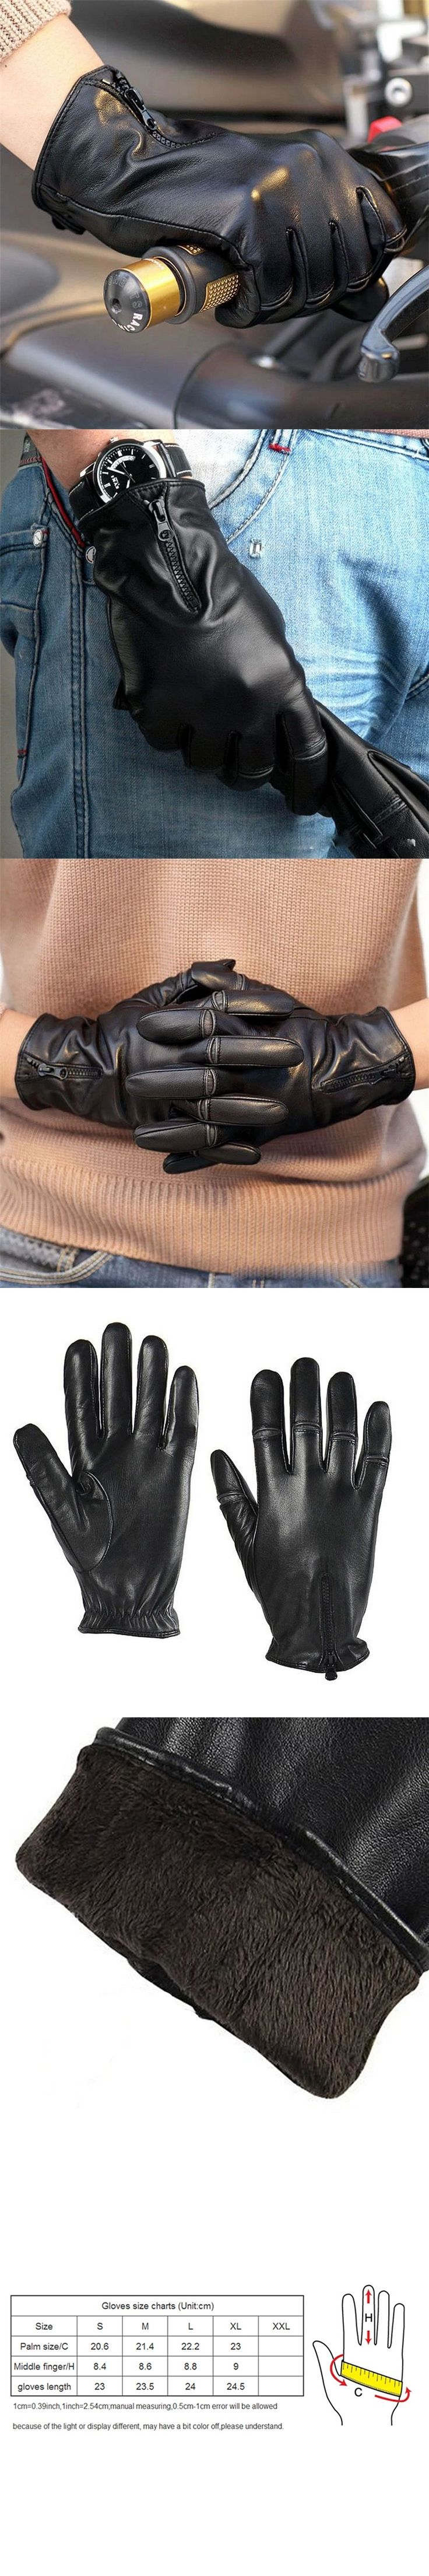 Men Genuine 2017 NEW  Leather Gloves Fashion Black Sheepskin Gloves Autumn Winter Plus Thermal Velvet Driving Gloves M008NC-5